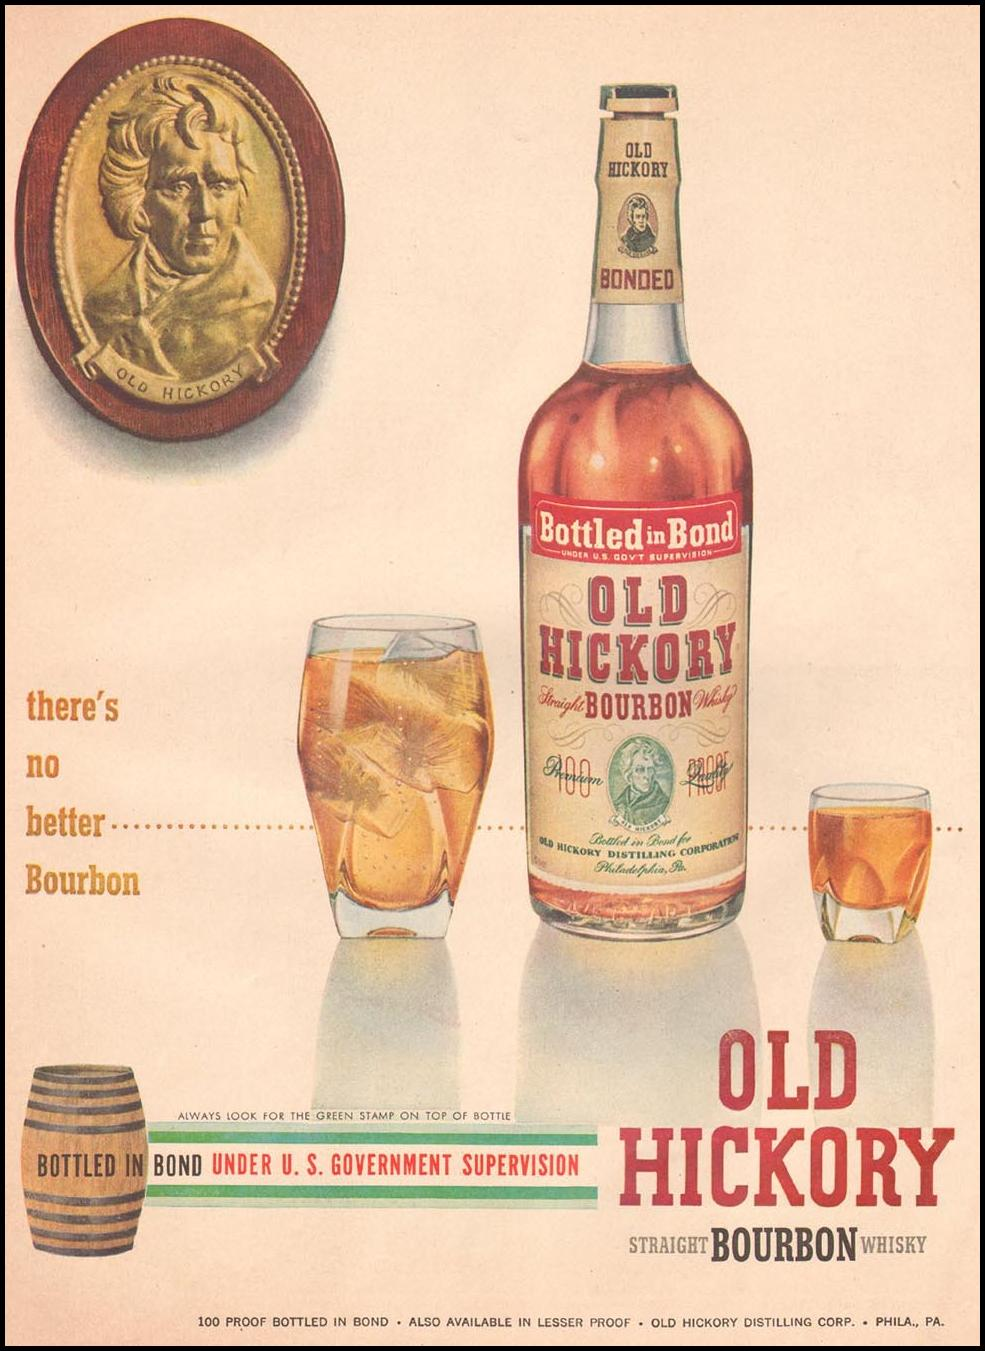 OLD HICKORY STRAIGHT BOURBON WHISKEY LIFE 07/02/1951 p. 67